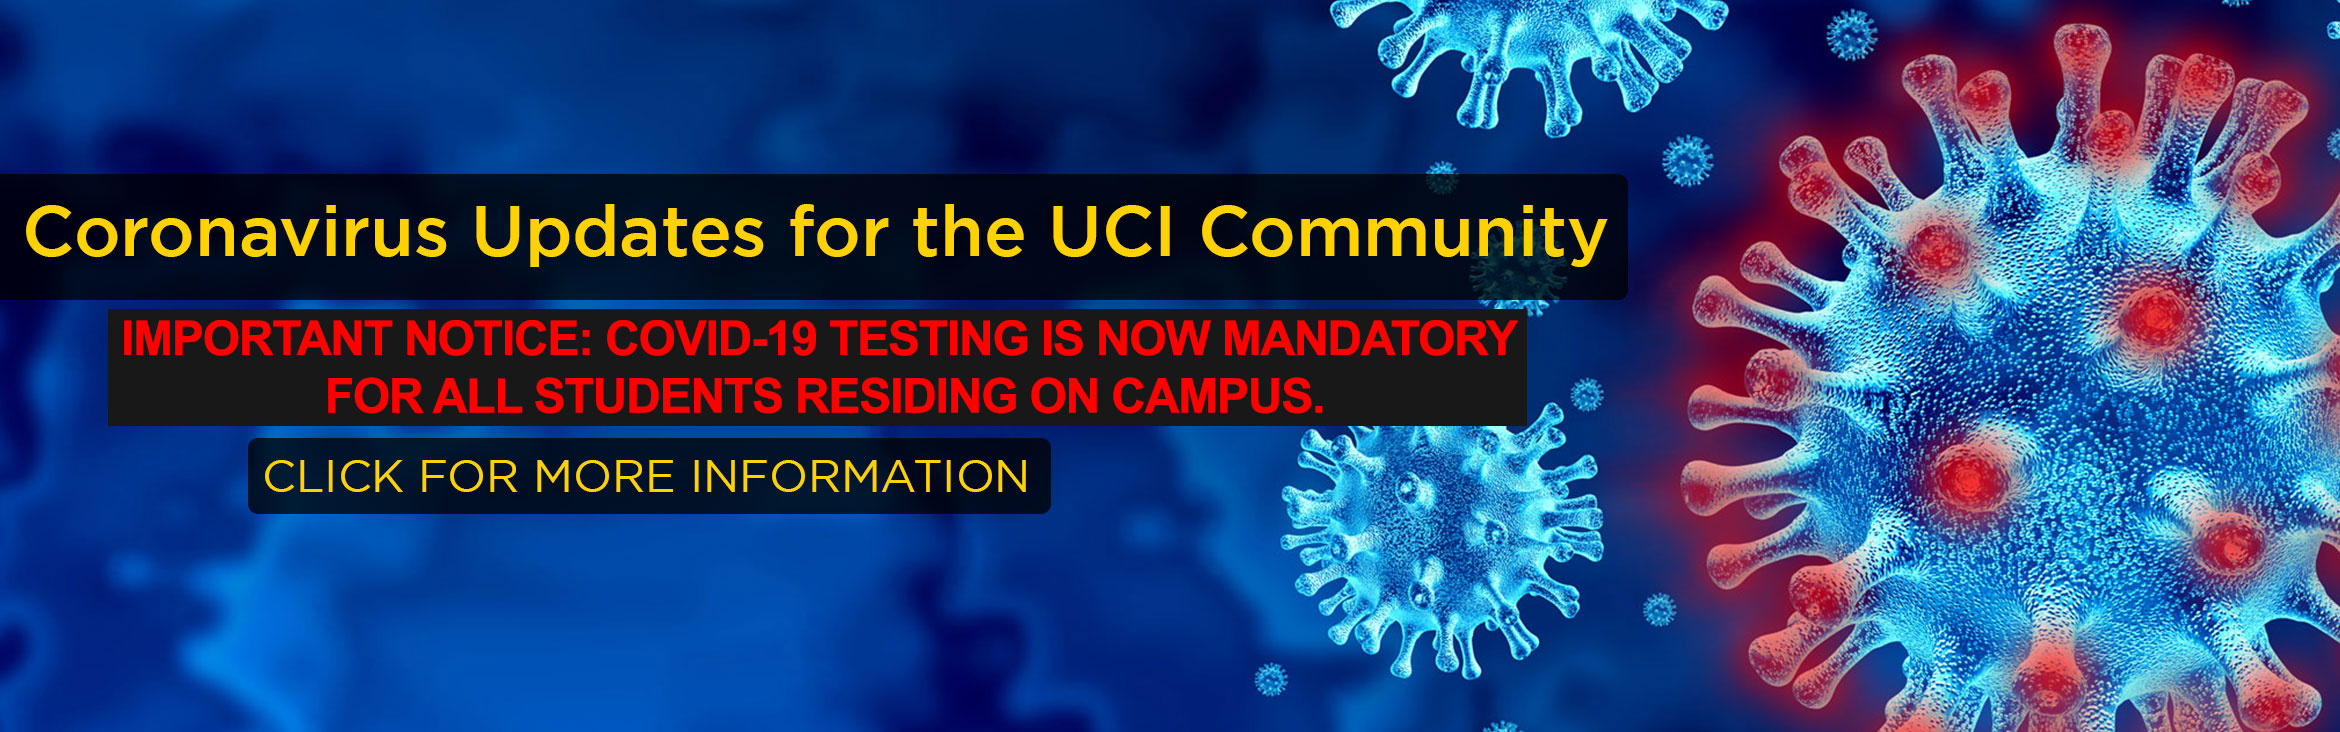 Coronavirus Updates for the UCI Community.